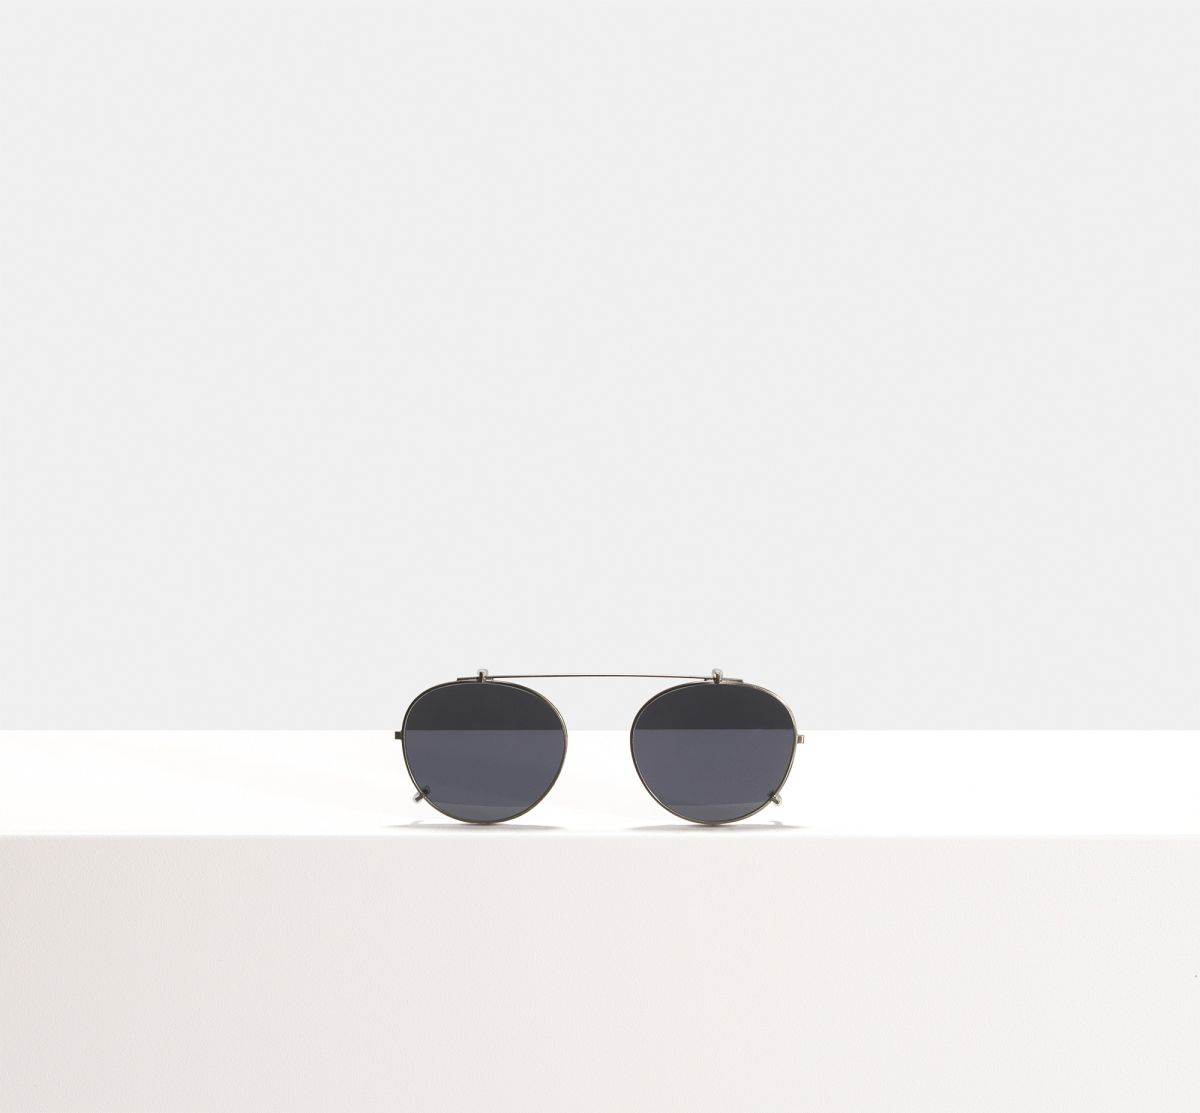 Easton clip-on round metal glasses in Gunmetal by Ace & Tate